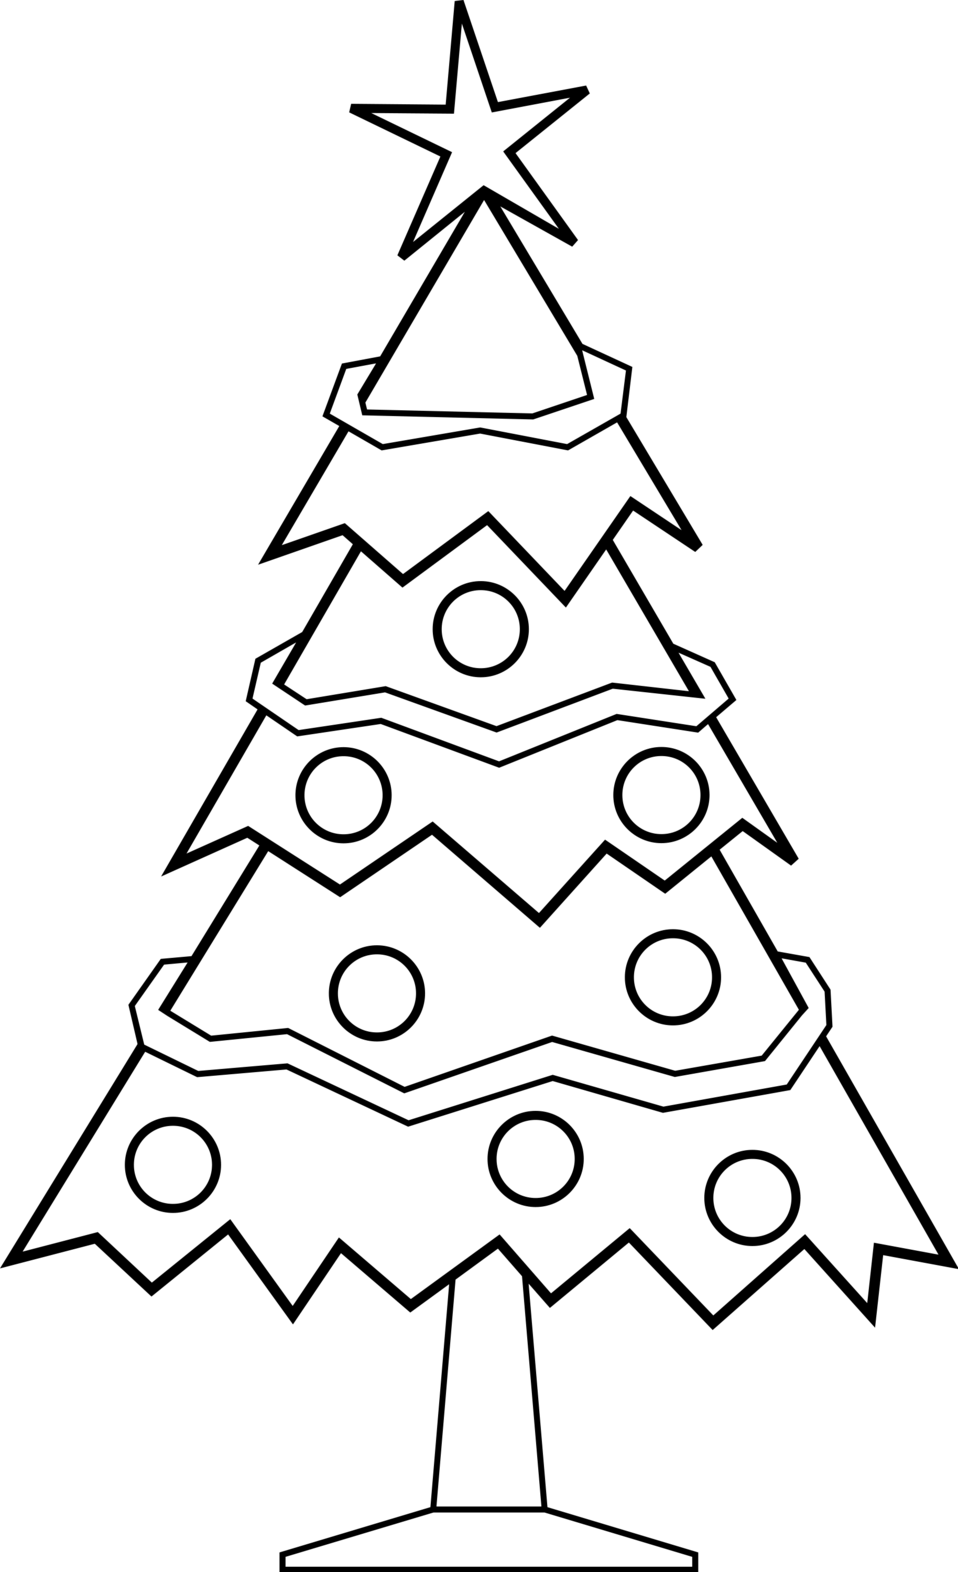 Black and white clipart christmas tree transparent stock Christmas Drawing Black And White at GetDrawings.com | Free for ... transparent stock